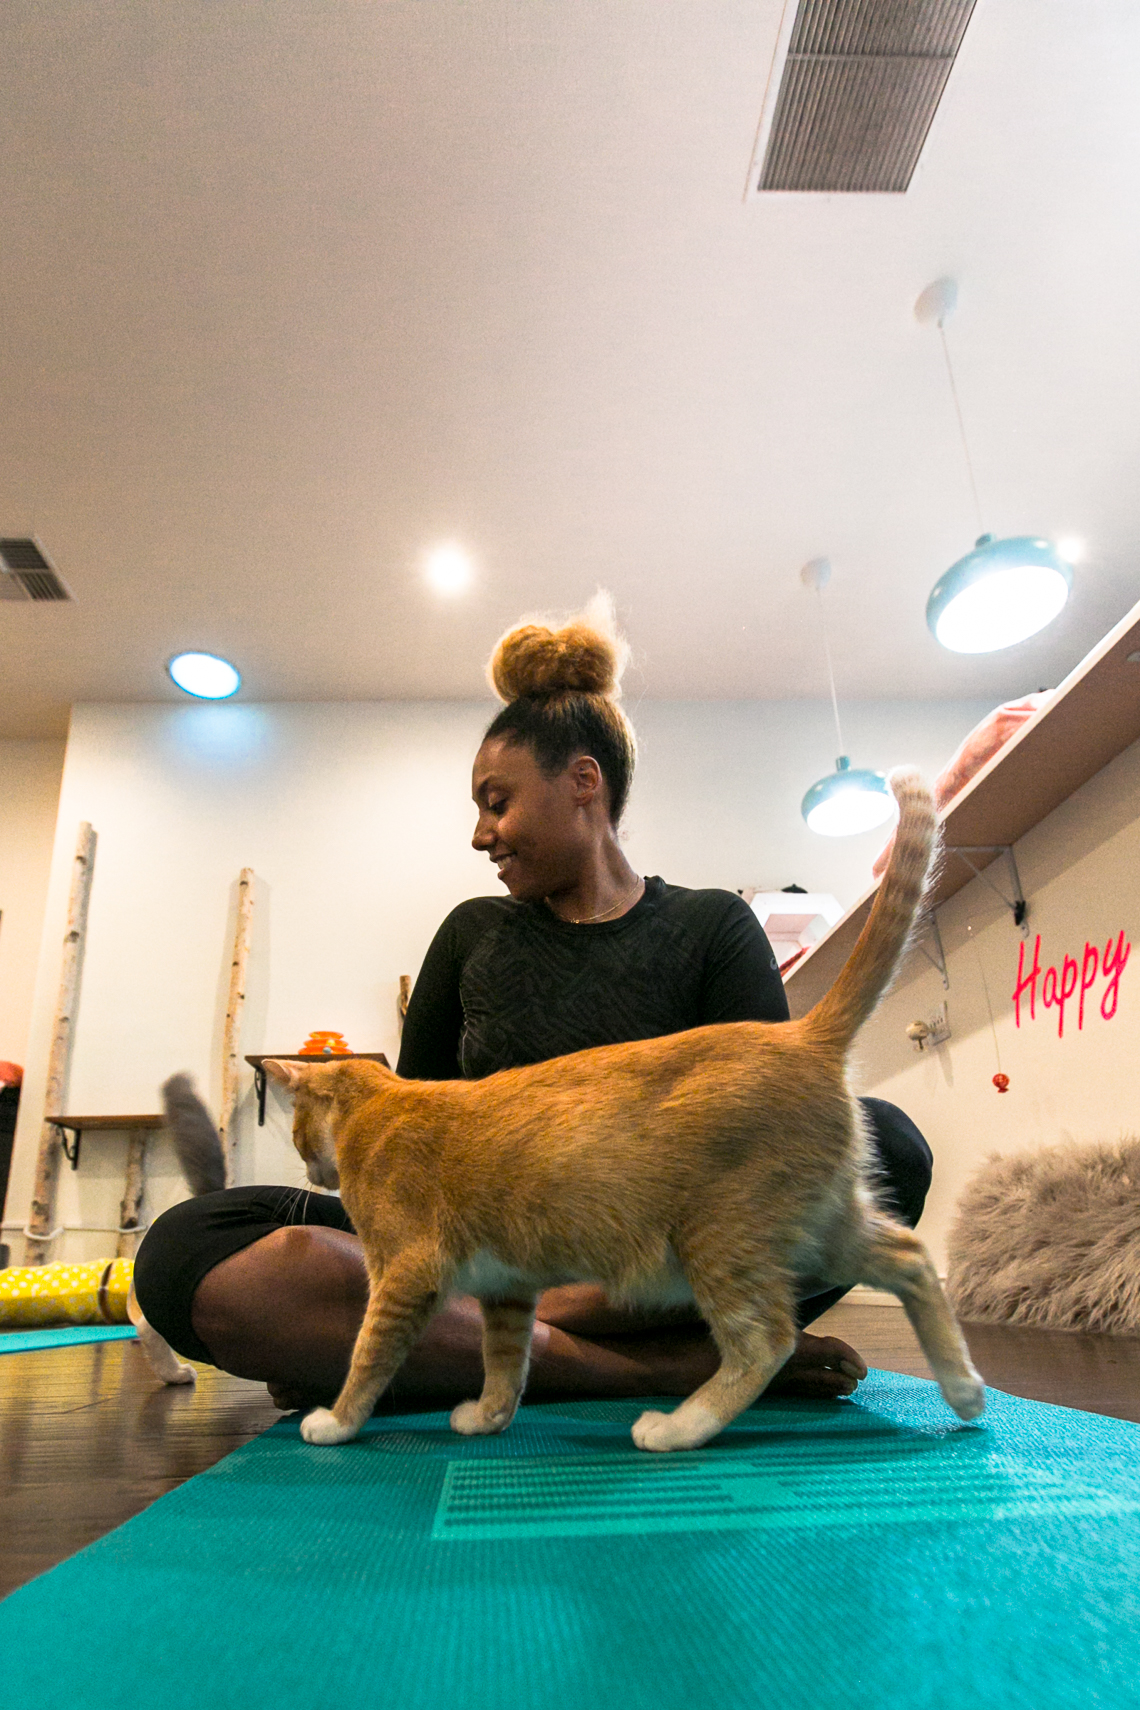 feline good social club-cat-yoga mat-rsee-xmmtt-lcm